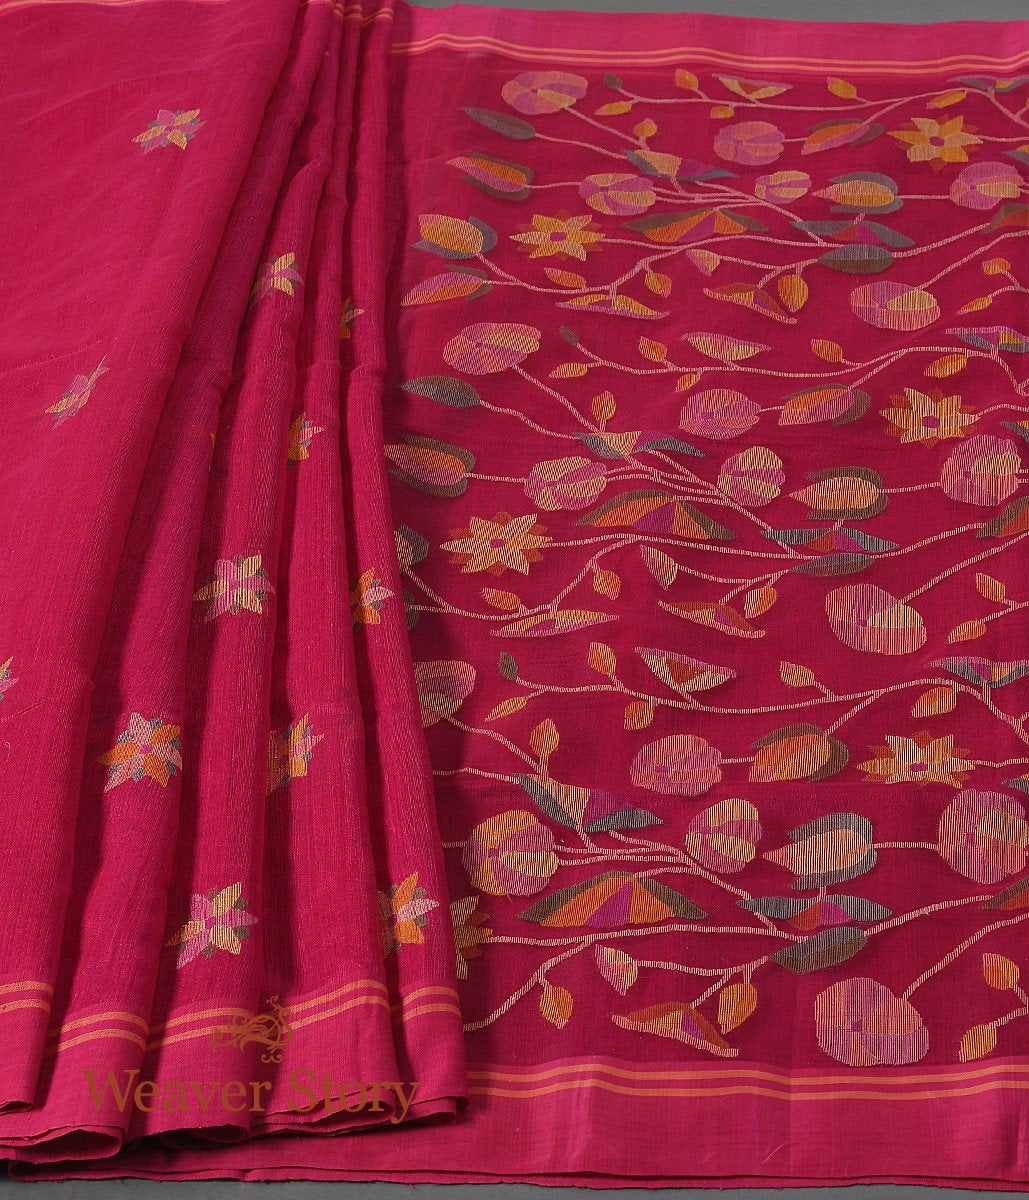 Handwoven Pink Matka Silk Saree with Muslin Pallu in Jamdani Weave